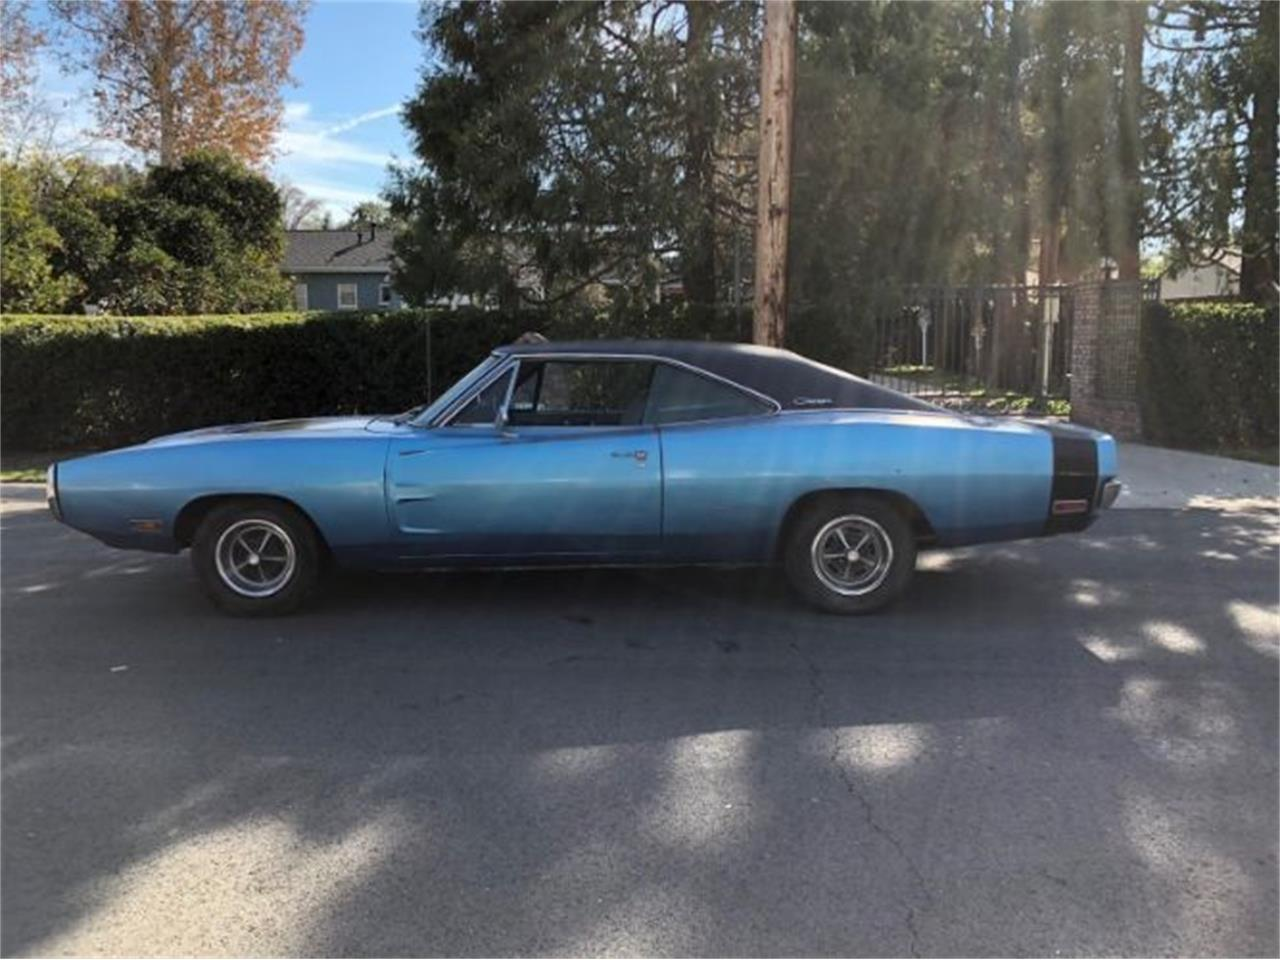 1970 Dodge Charger For Sale Classiccars Com Cc 1188138